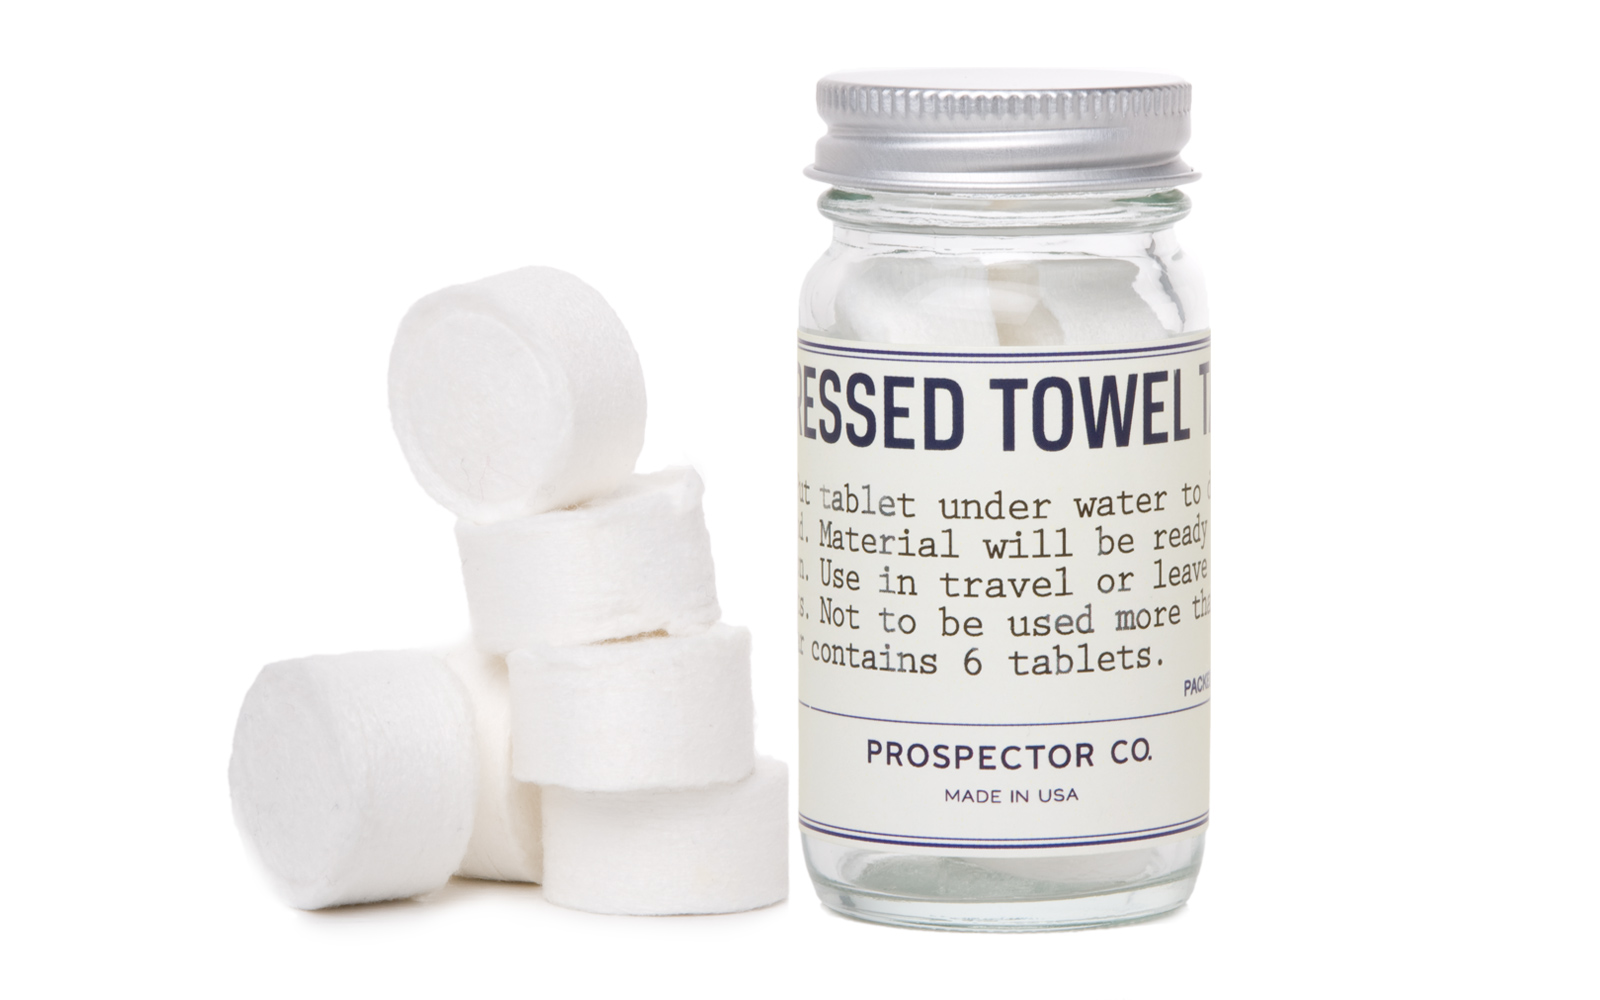 Best Travel Products: Prospector Co. Compressed Towel